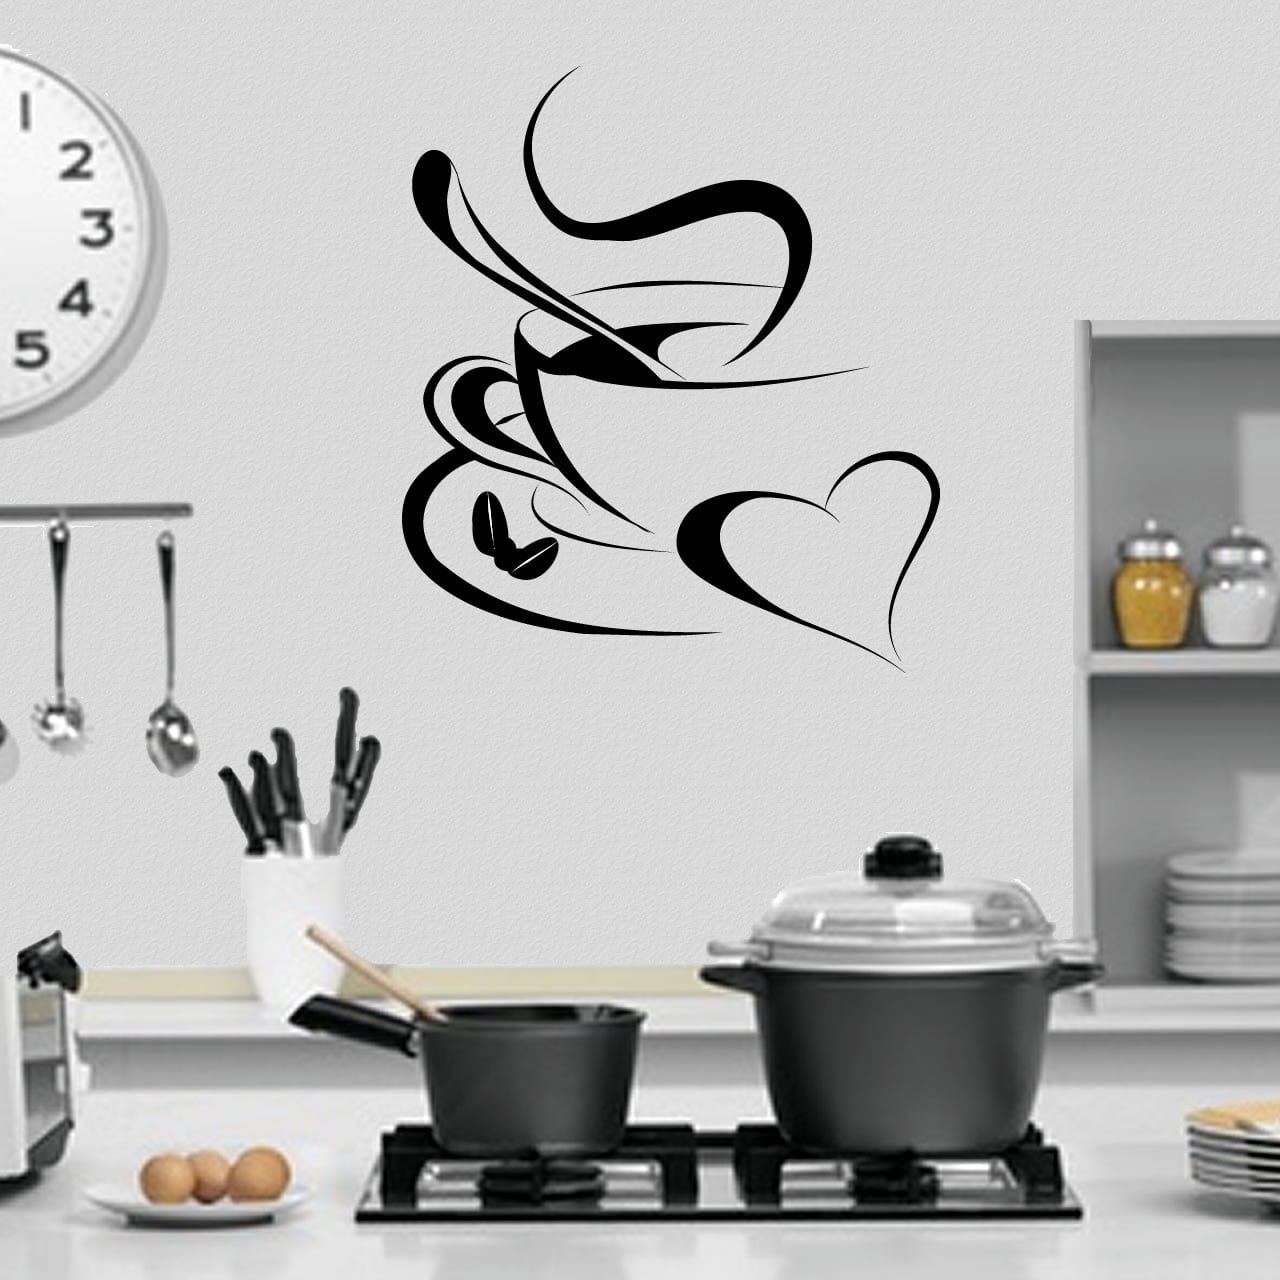 Cup of coffee with love kitchen wall sticker world of wall stickers the product is already in the wishlist browse wishlist cup of coffee with love kitchen wall sticker amipublicfo Images